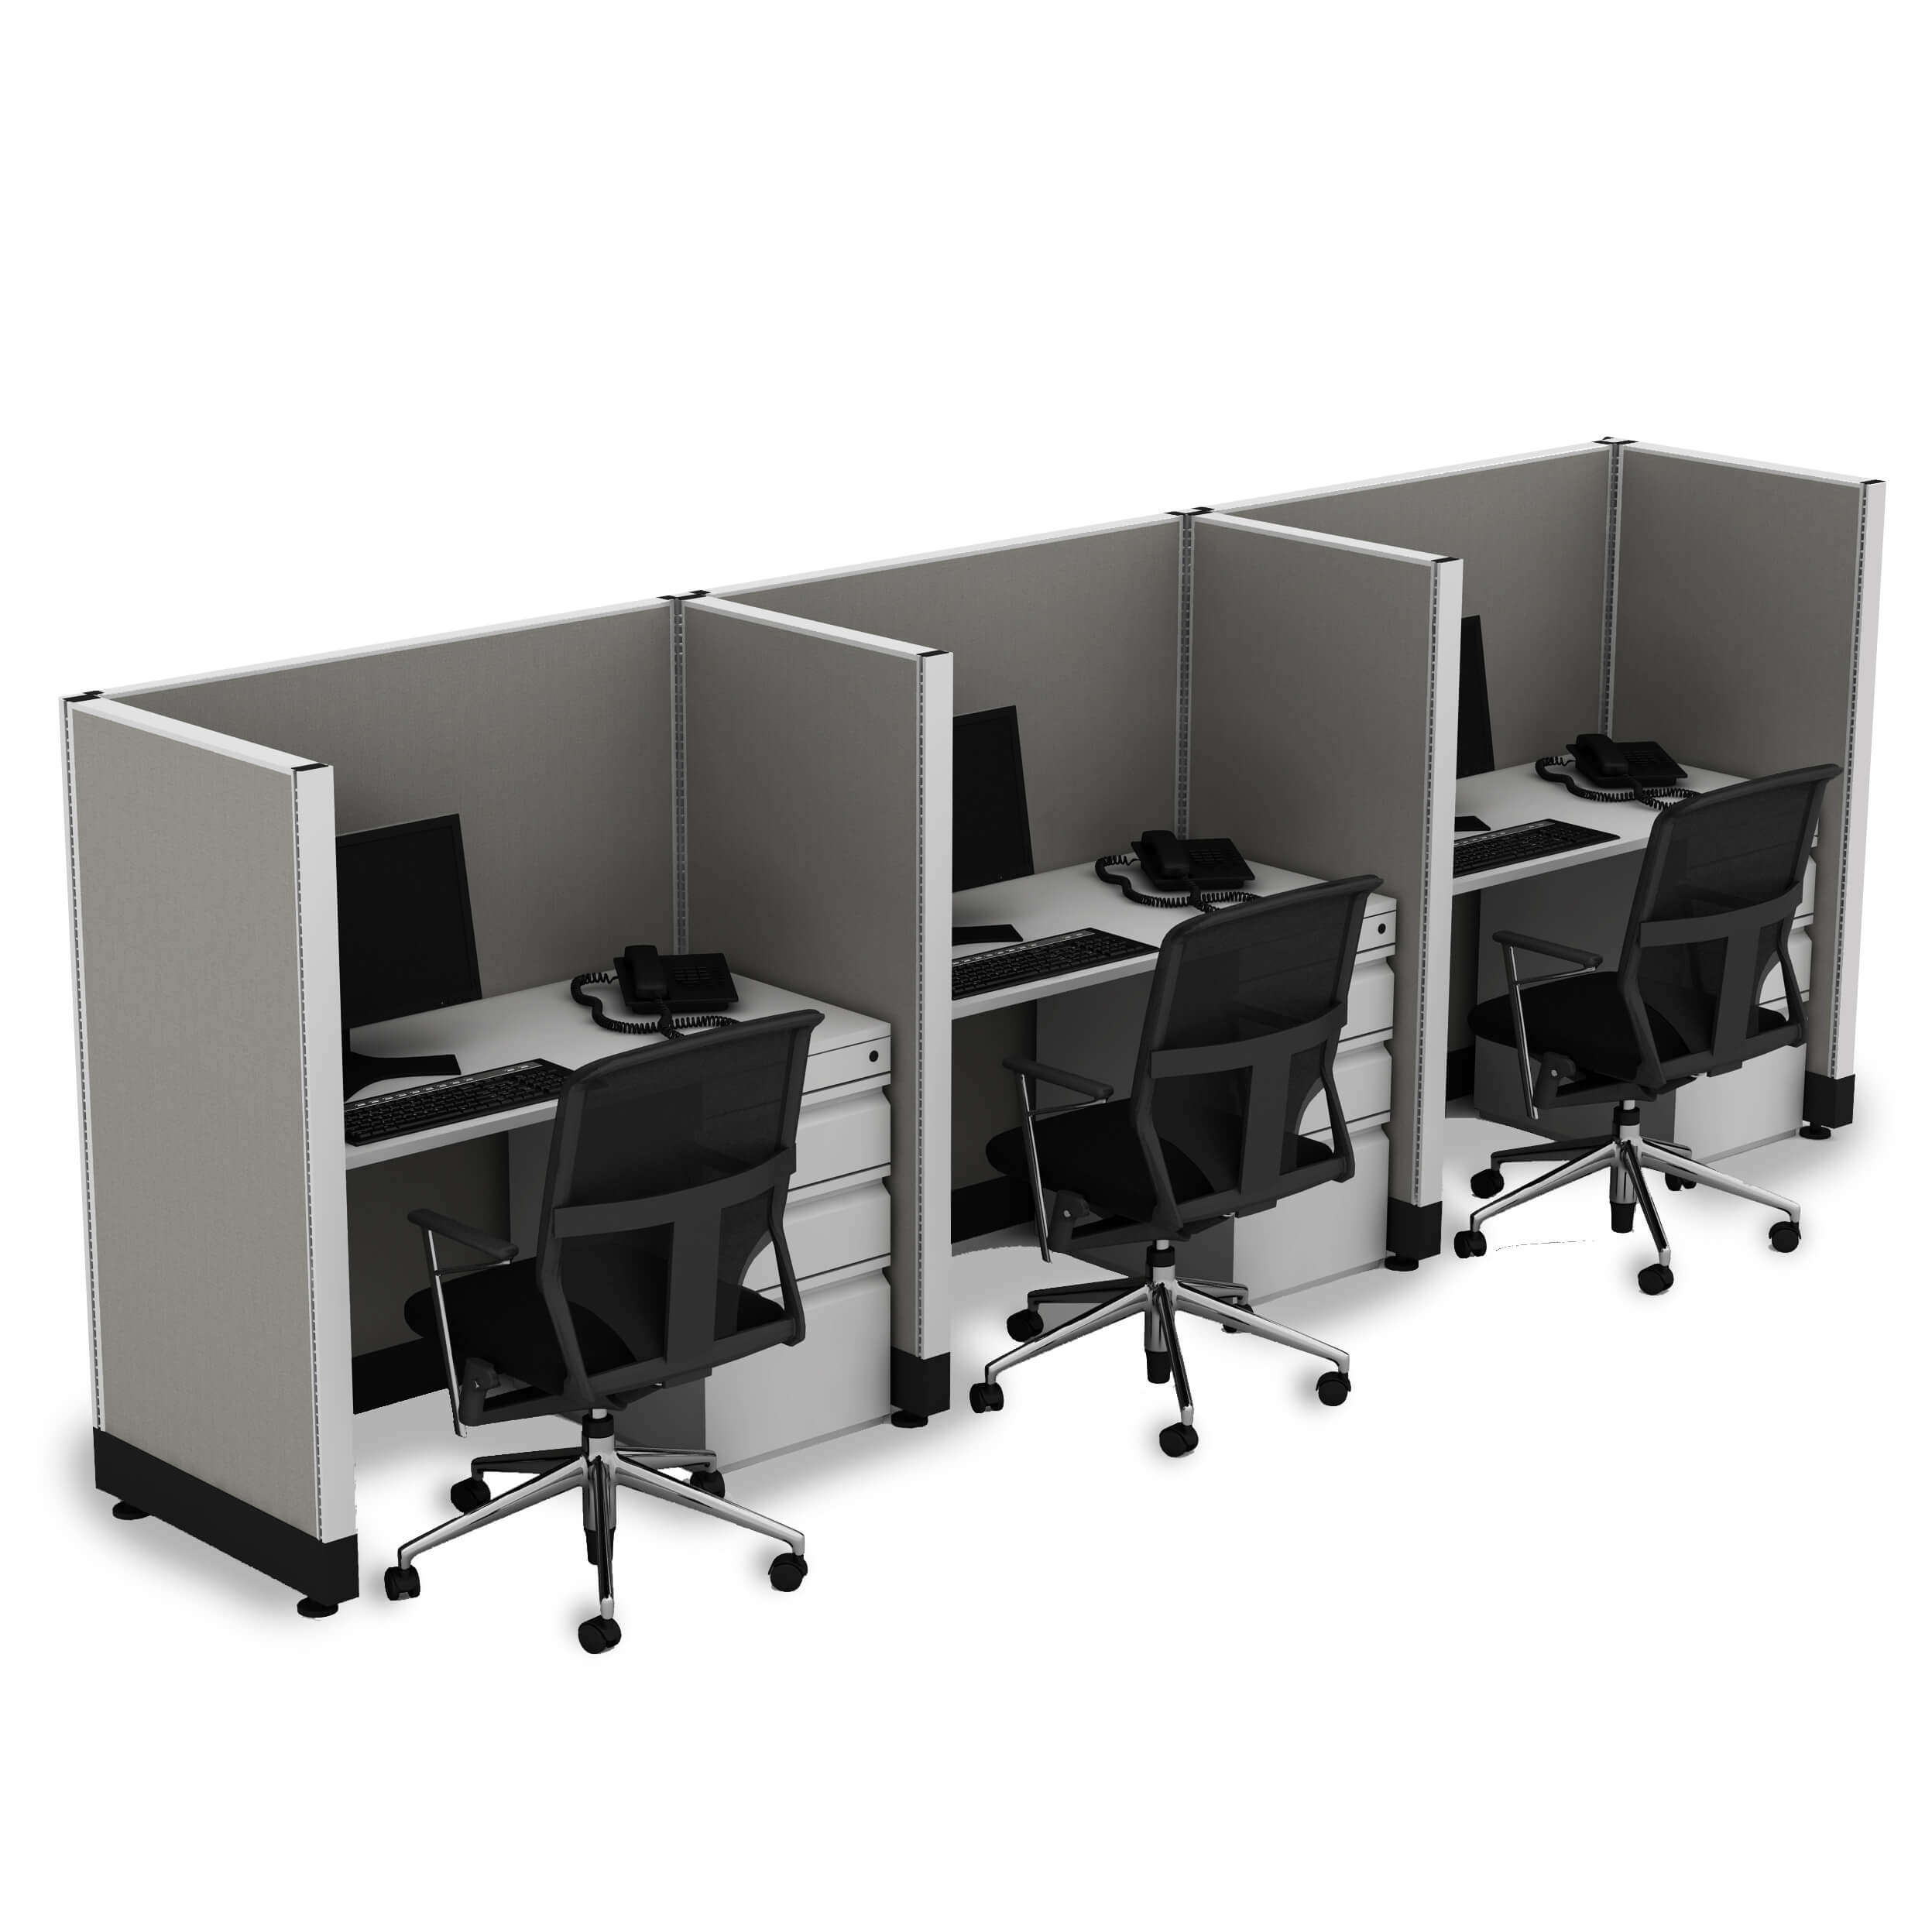 Hot desking hotelling station 3 pack powered